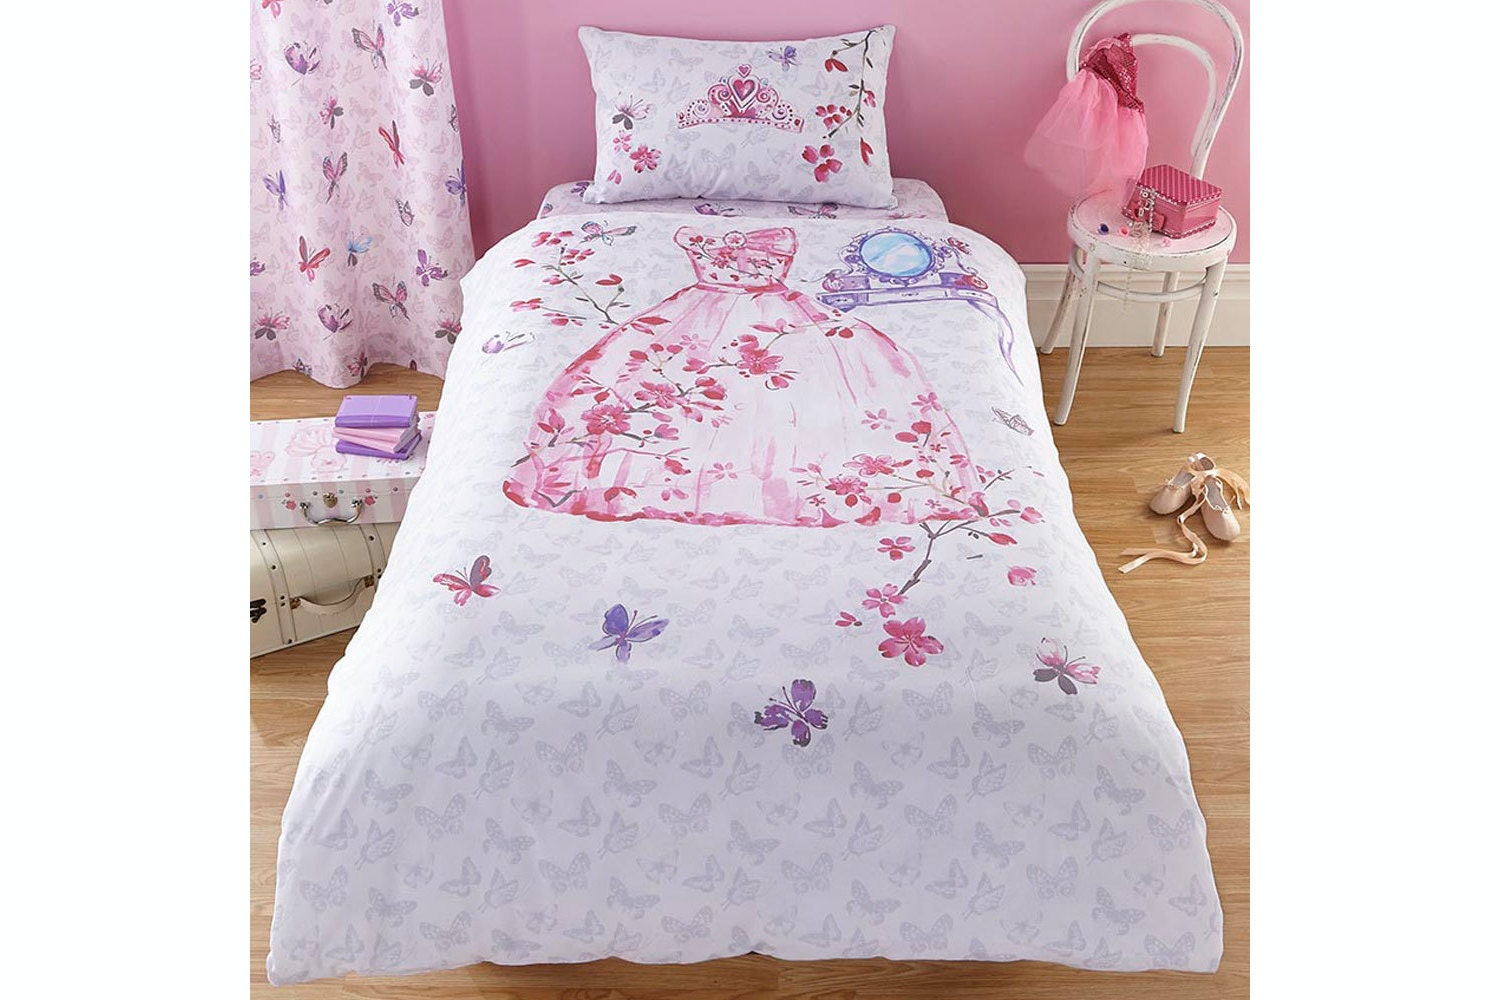 Glamour Princess Single Duvet Set